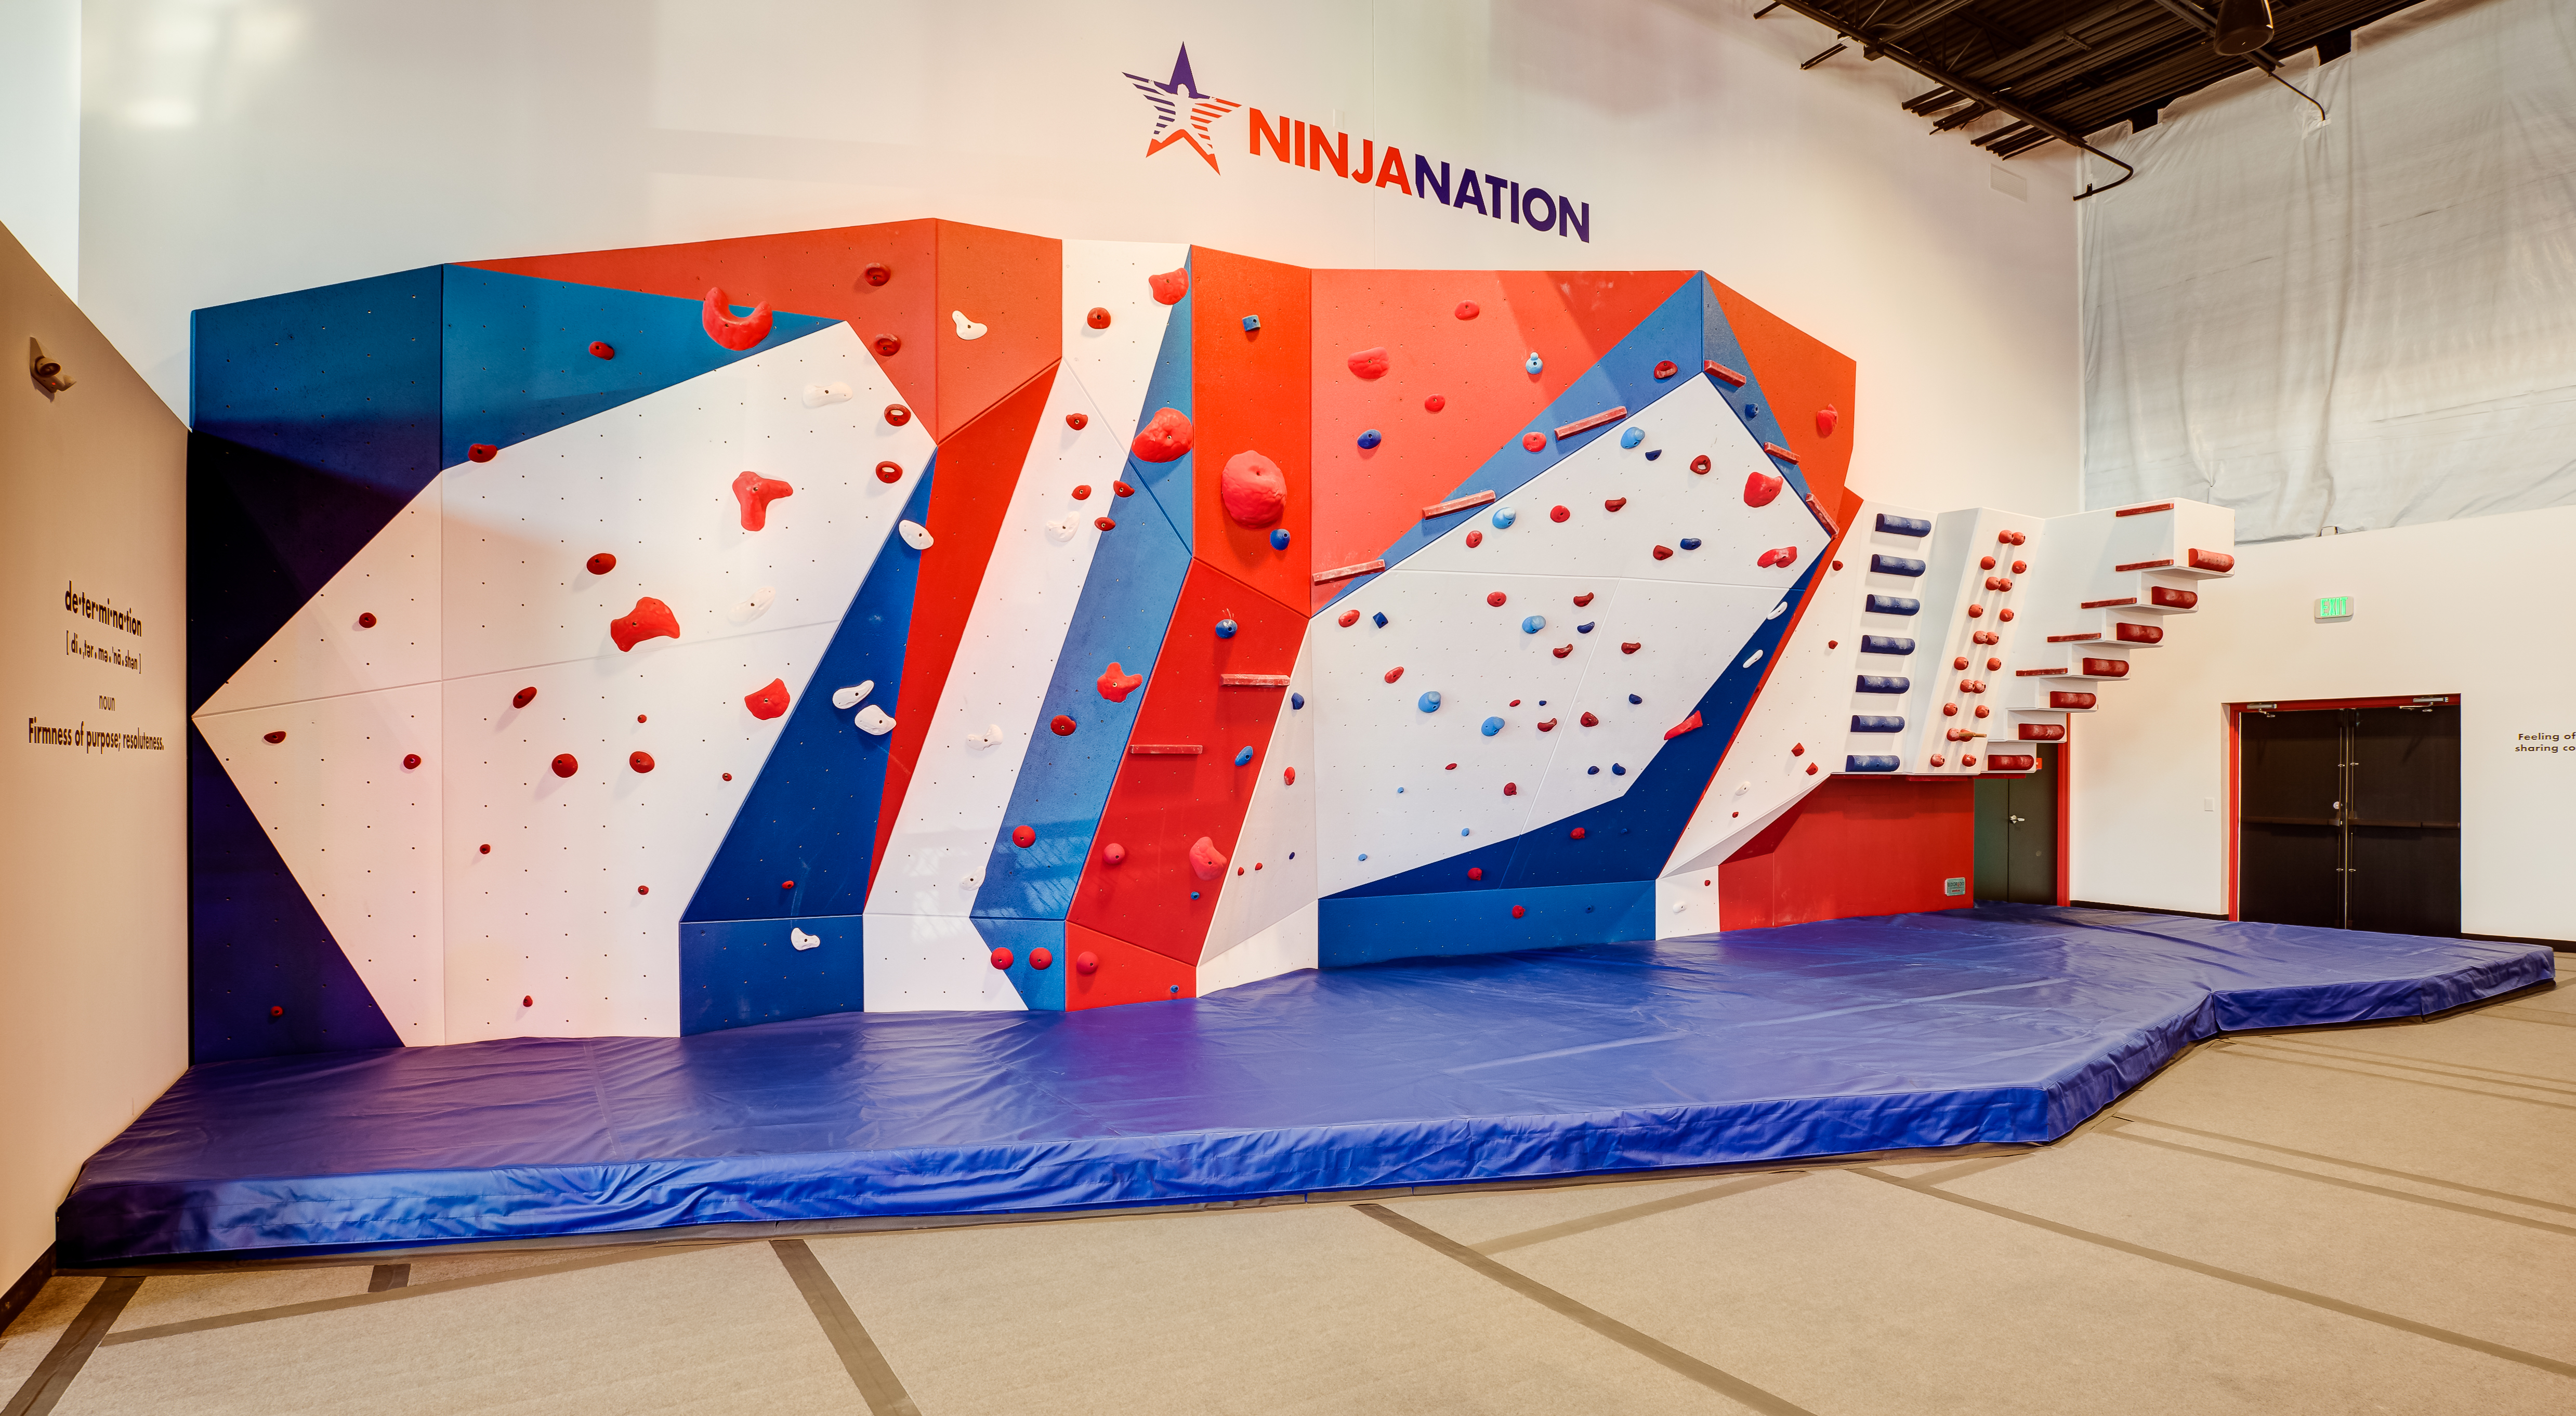 Ninja Nation; a Top Franchise Opportunity in the Houston Area